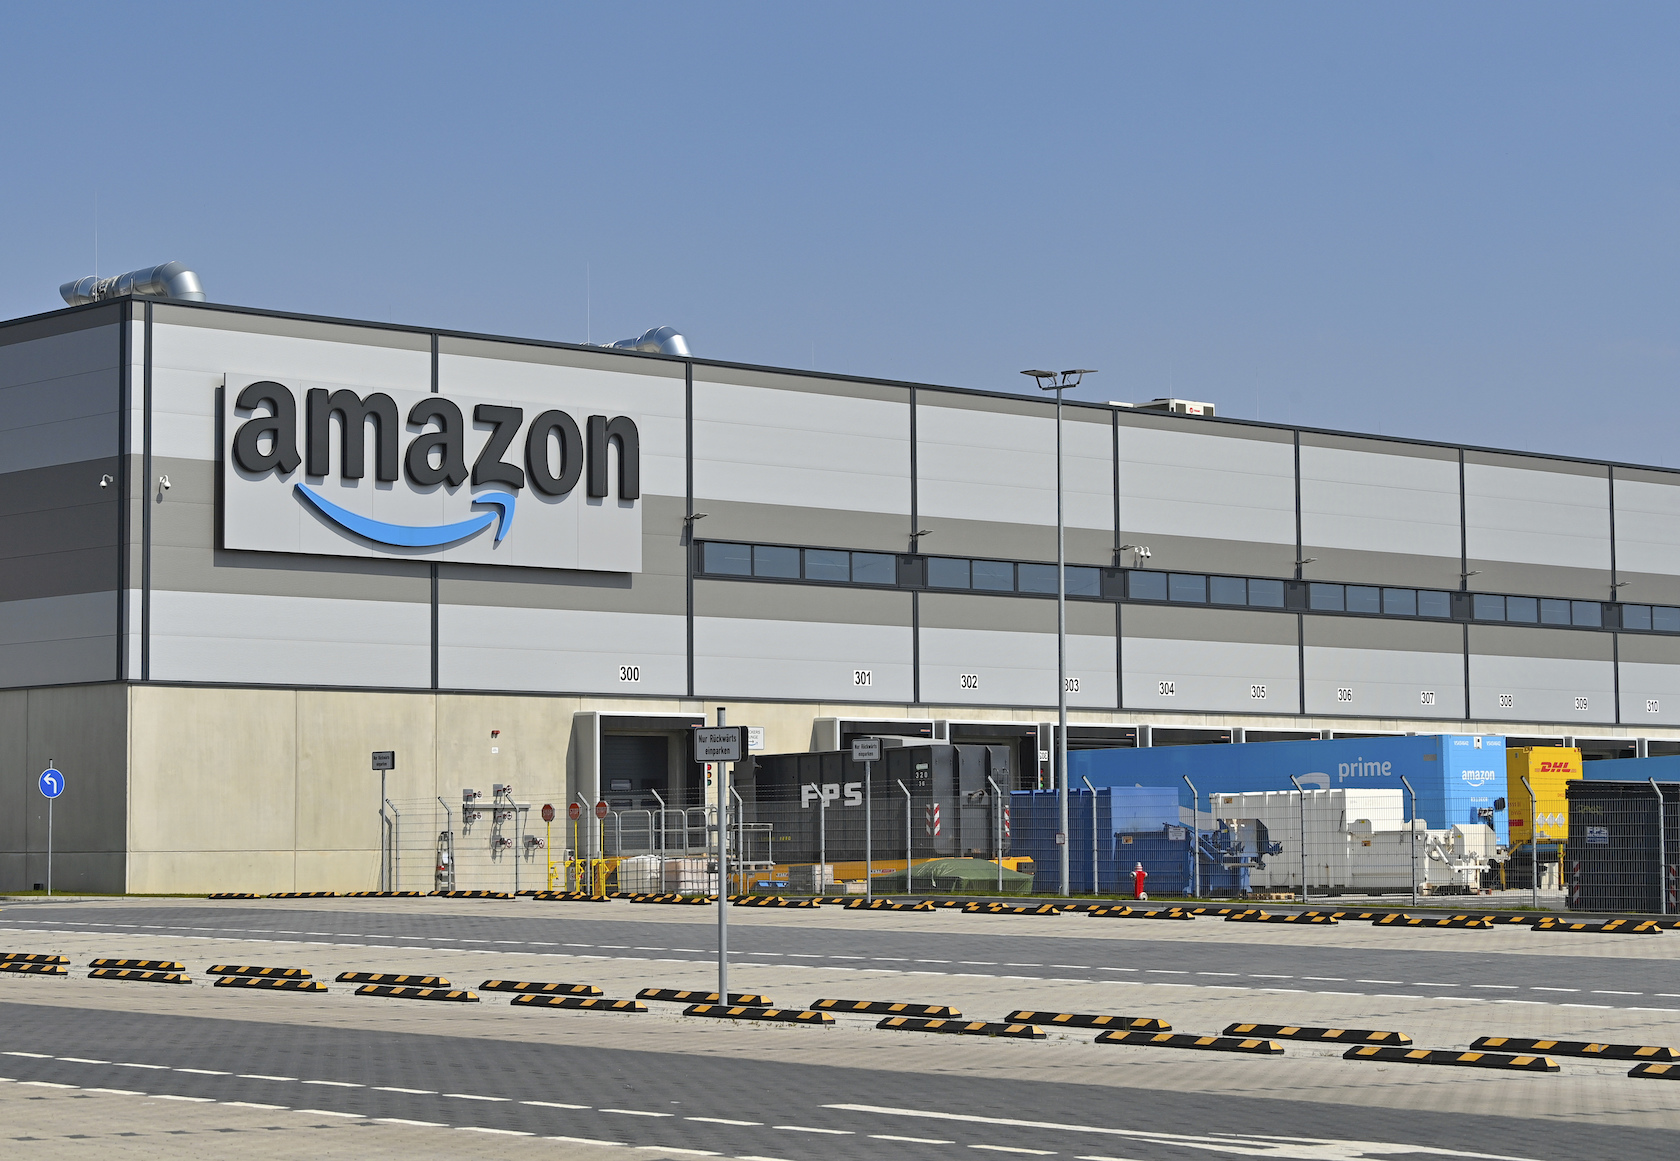 The soon-to-be-operator of a lone Amazon warehouse in California's Bay Area is prepping to go public before officially owning any property. But Rox Financial LP, the limited partnership that is set to purchase the 145,500-square-foot facility and lease it to the e-commerce giant, has serious goals of expanding well beyond its first warehouse.